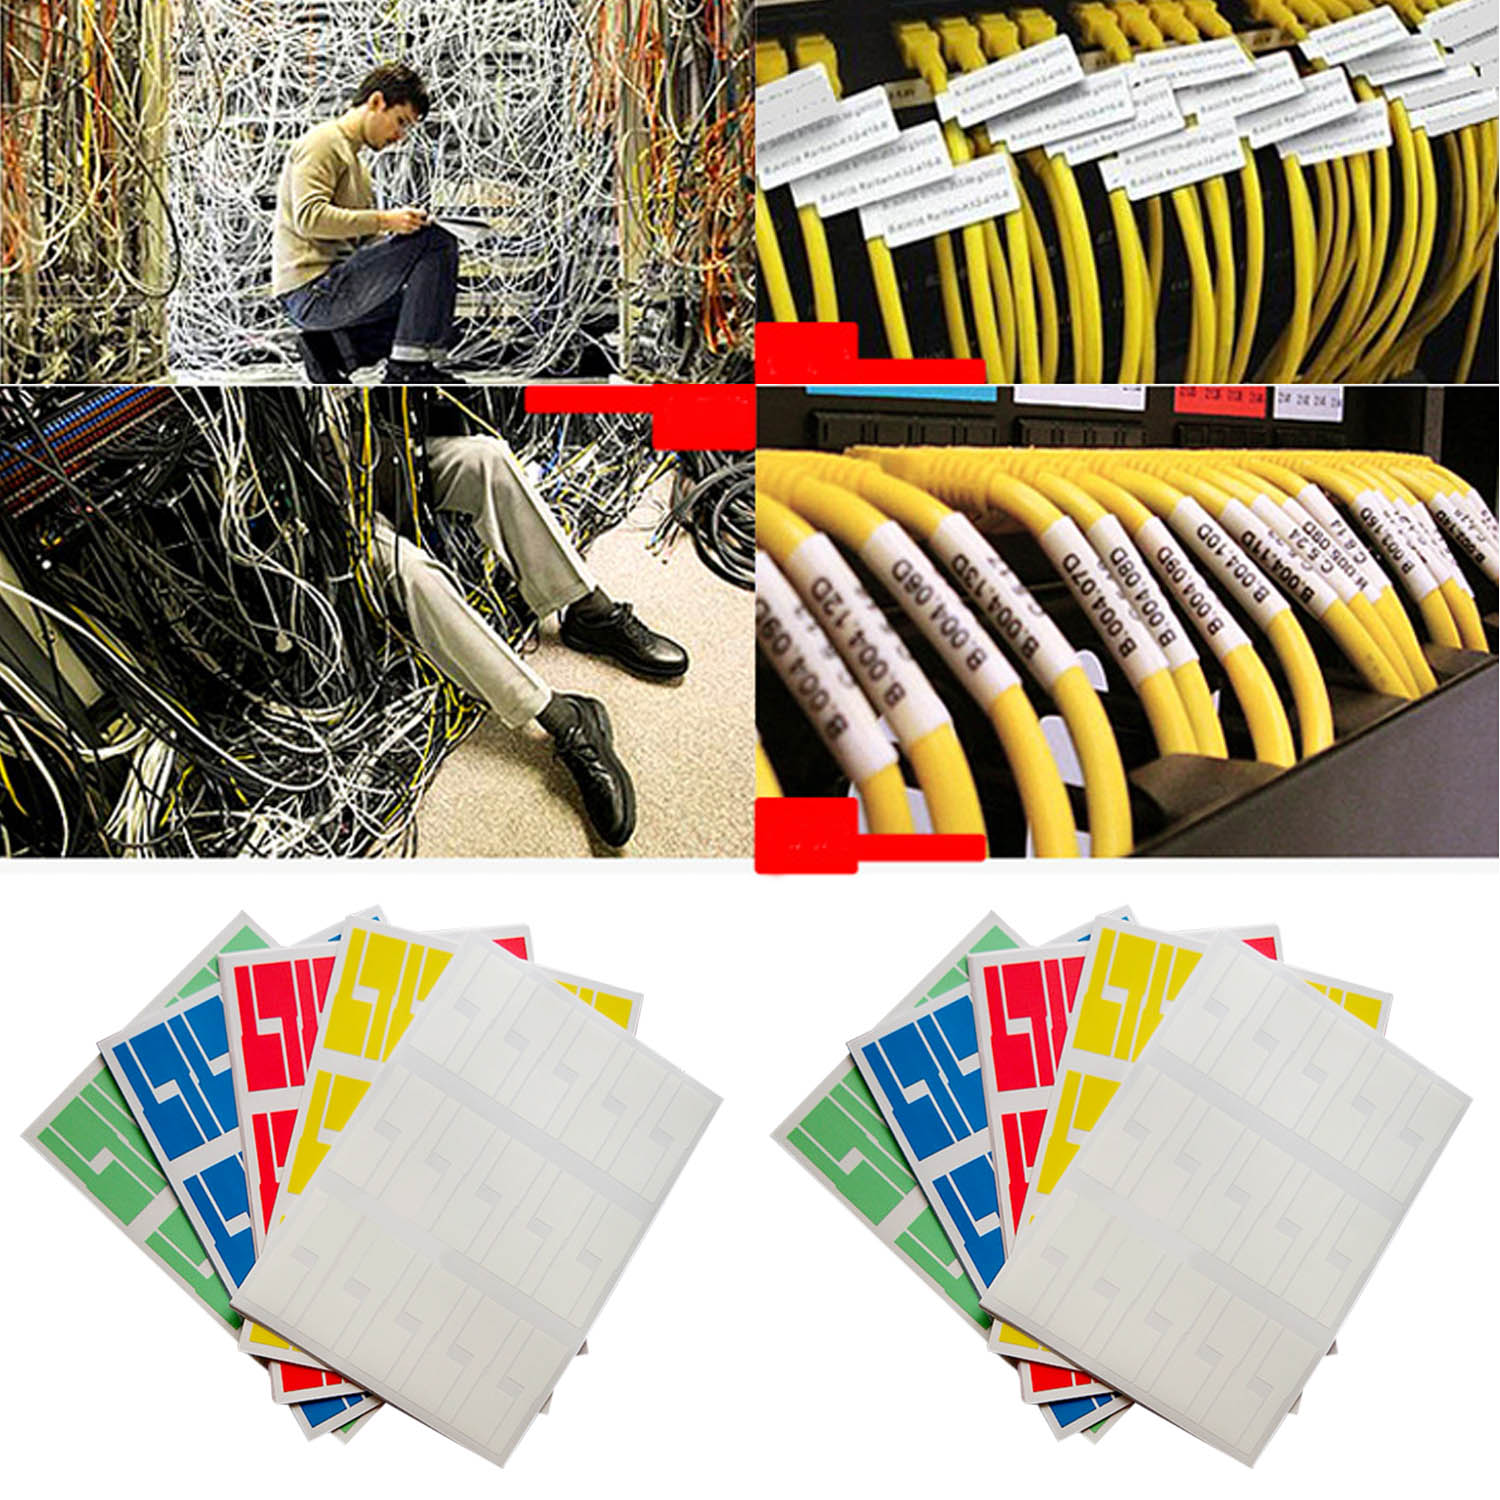 10 Sheets Self-adhesive Waterproof Tear Resistant Cable Labels Sticker Cord Identification Tags For Printer Duplicator A4 Size